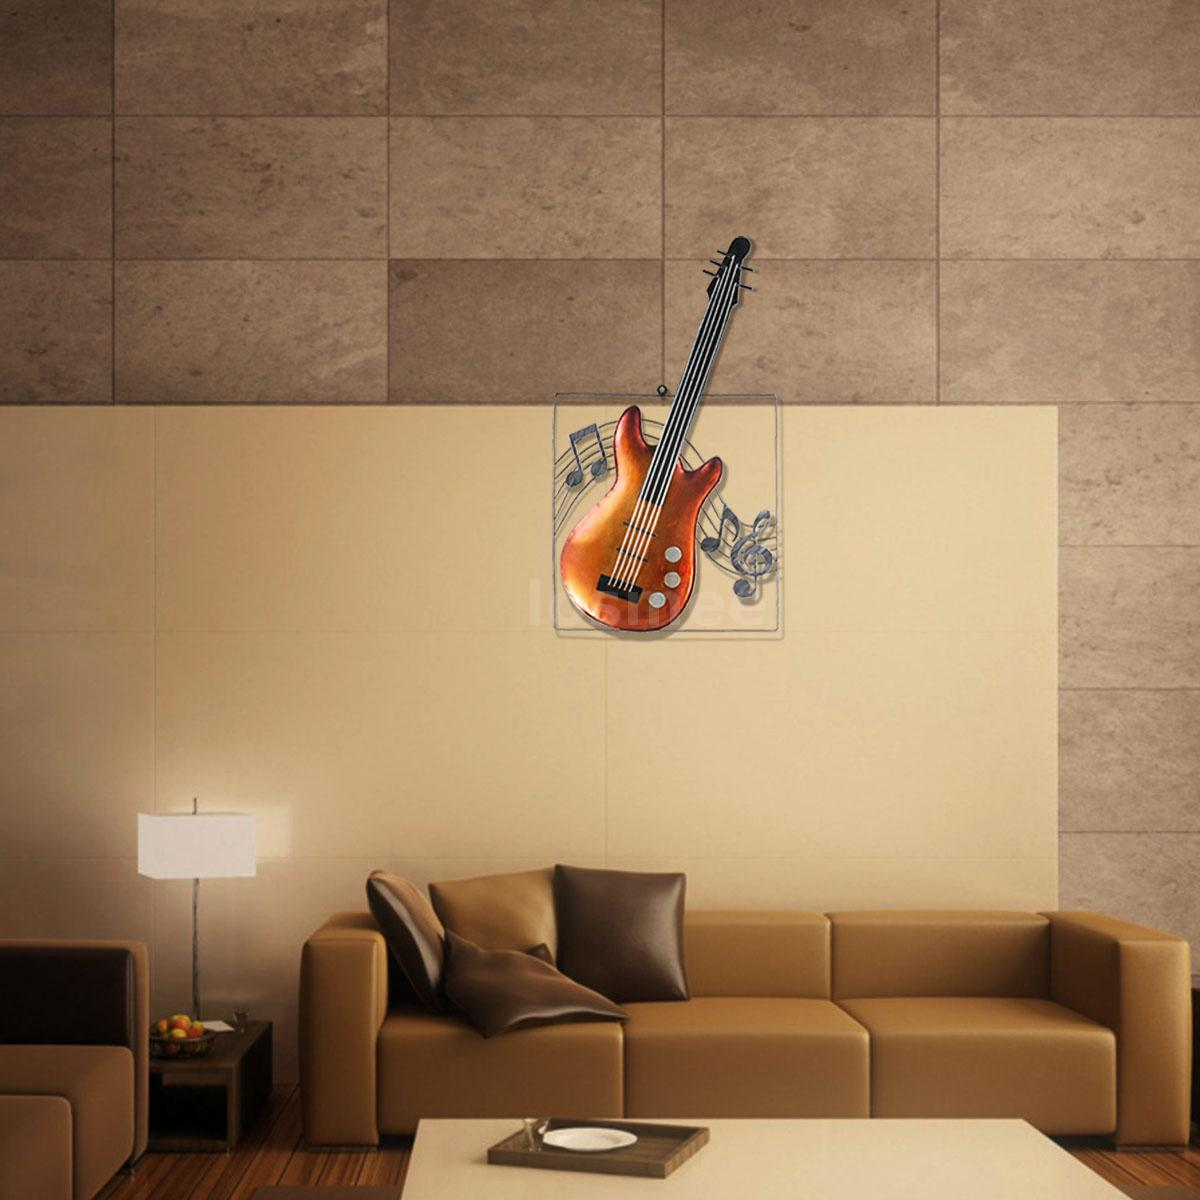 Fine Wall Hanging Decor Pictures Inspiration - The Wall Art ...